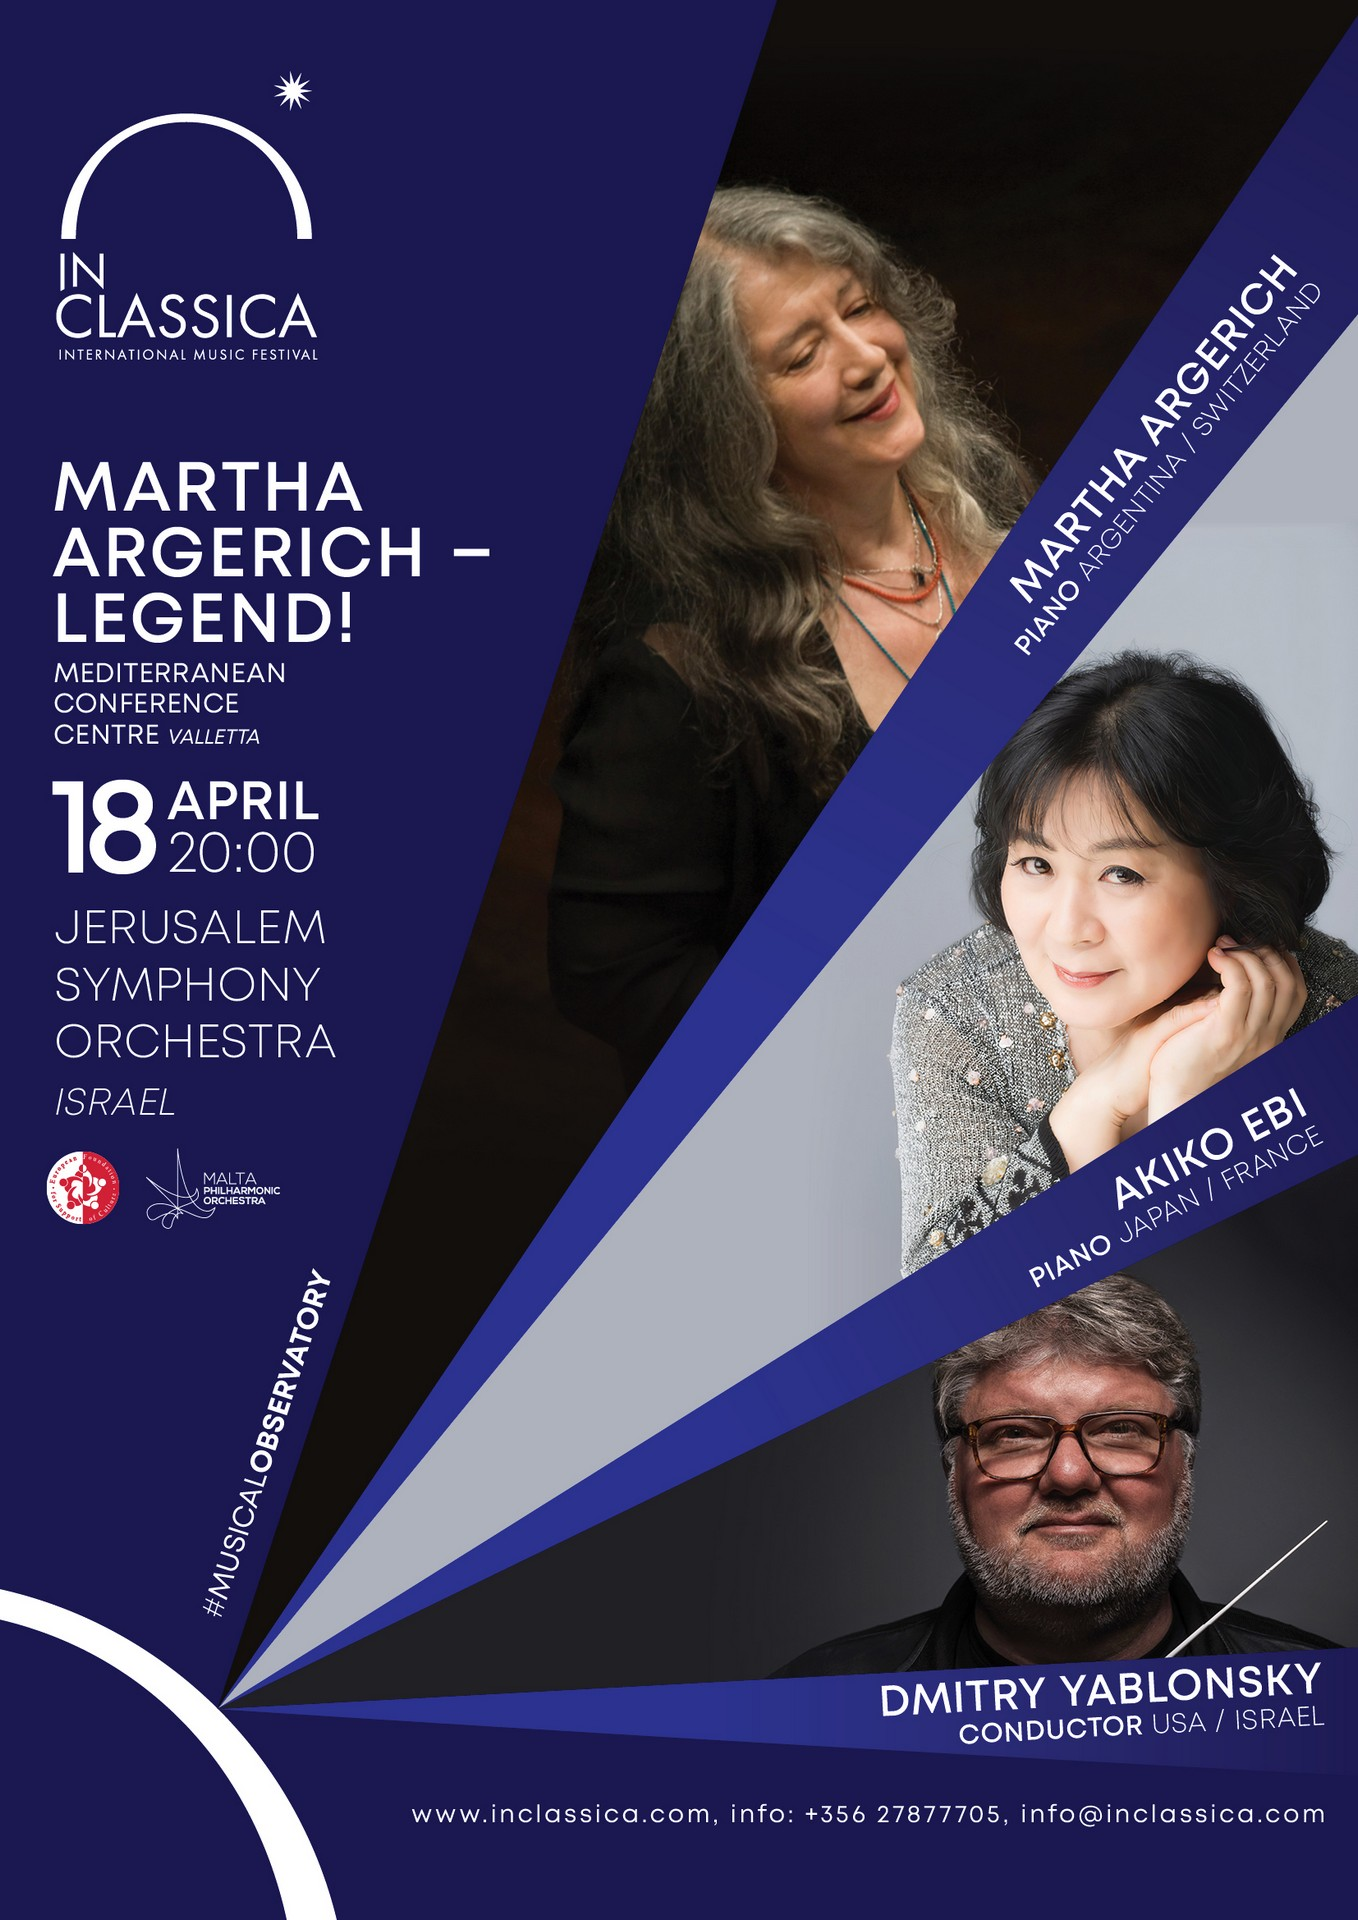 Martha Argerich - Legend! flyer